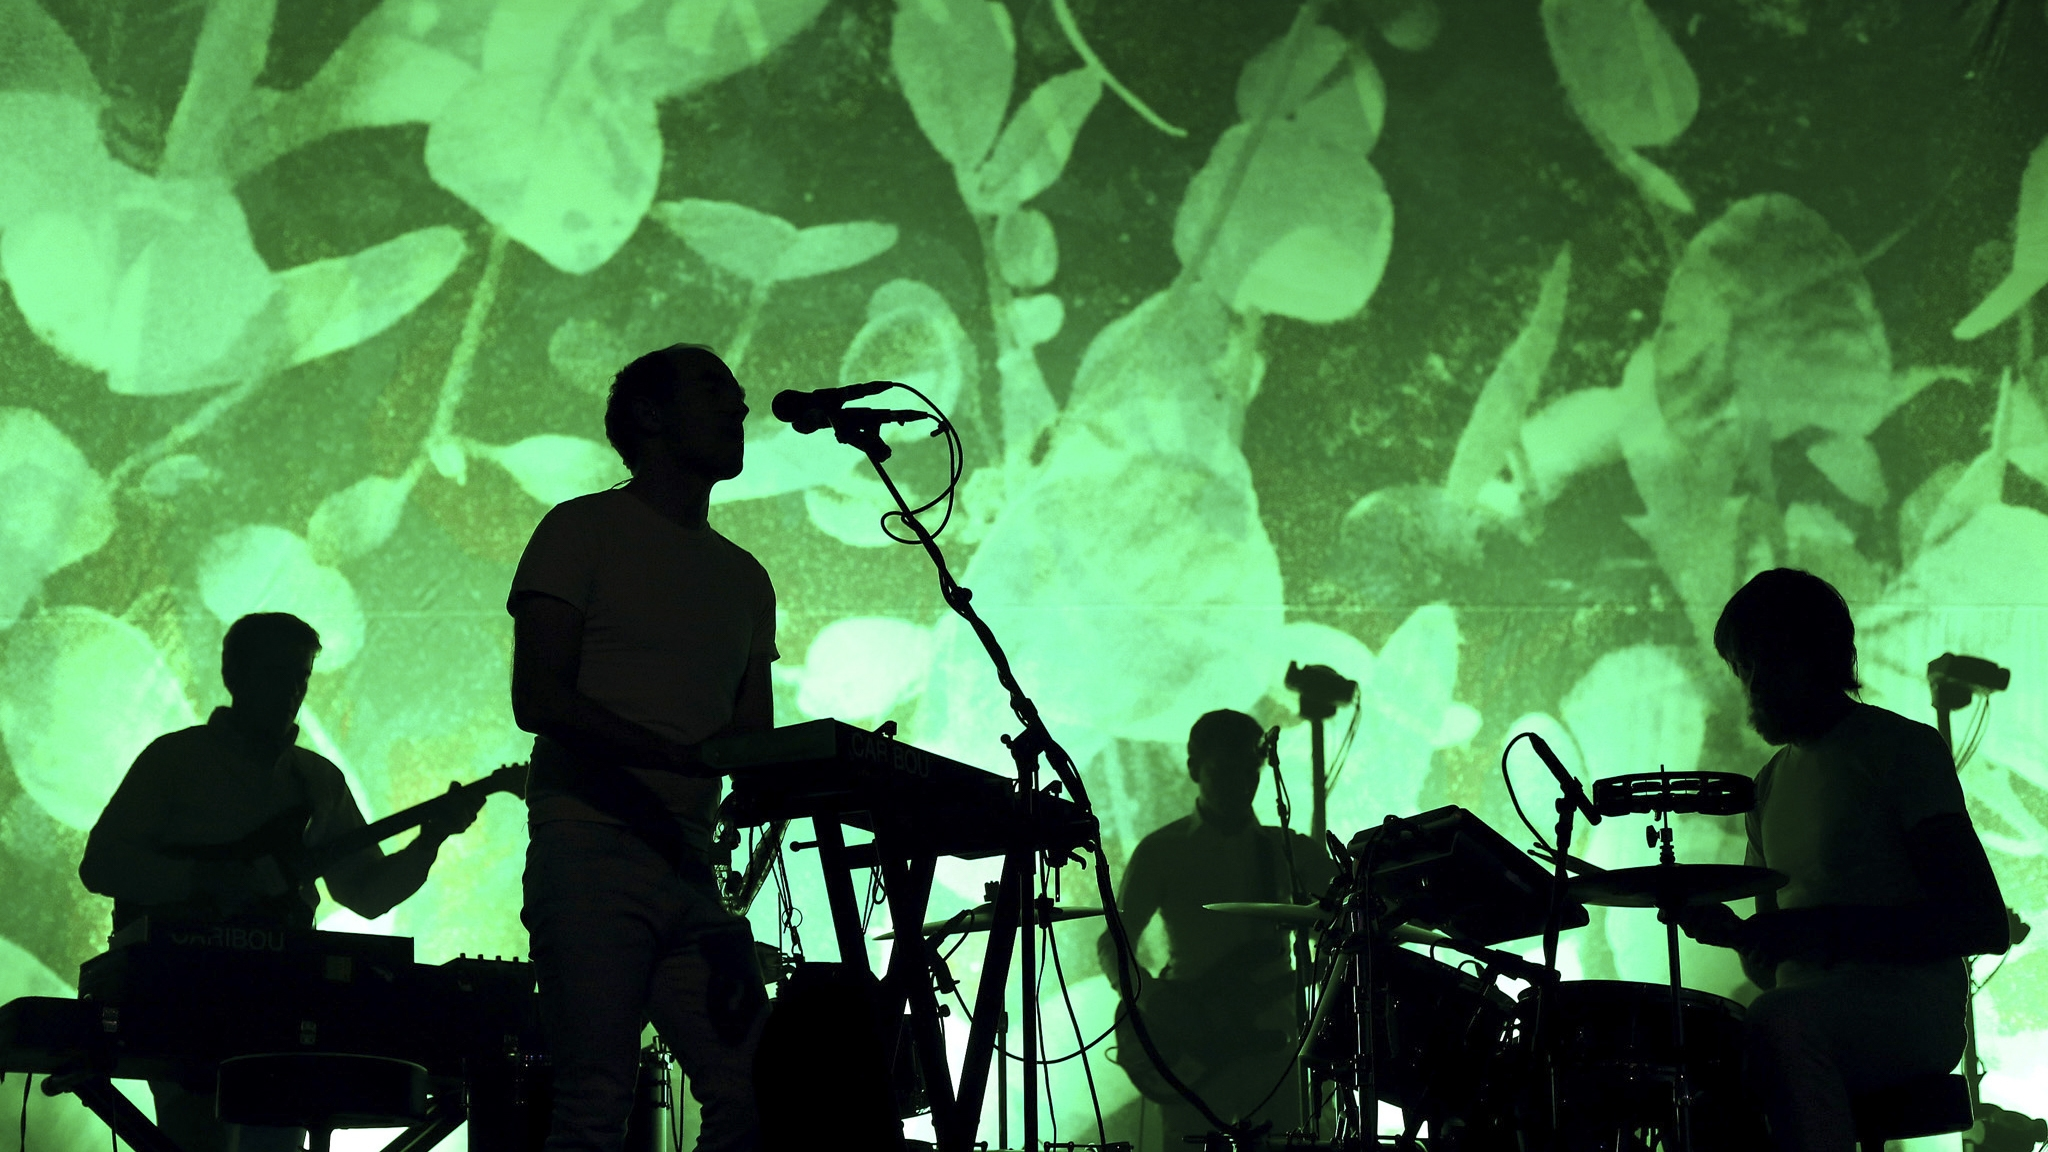 Upcoming Concerts In La From Local Bands To Big Names